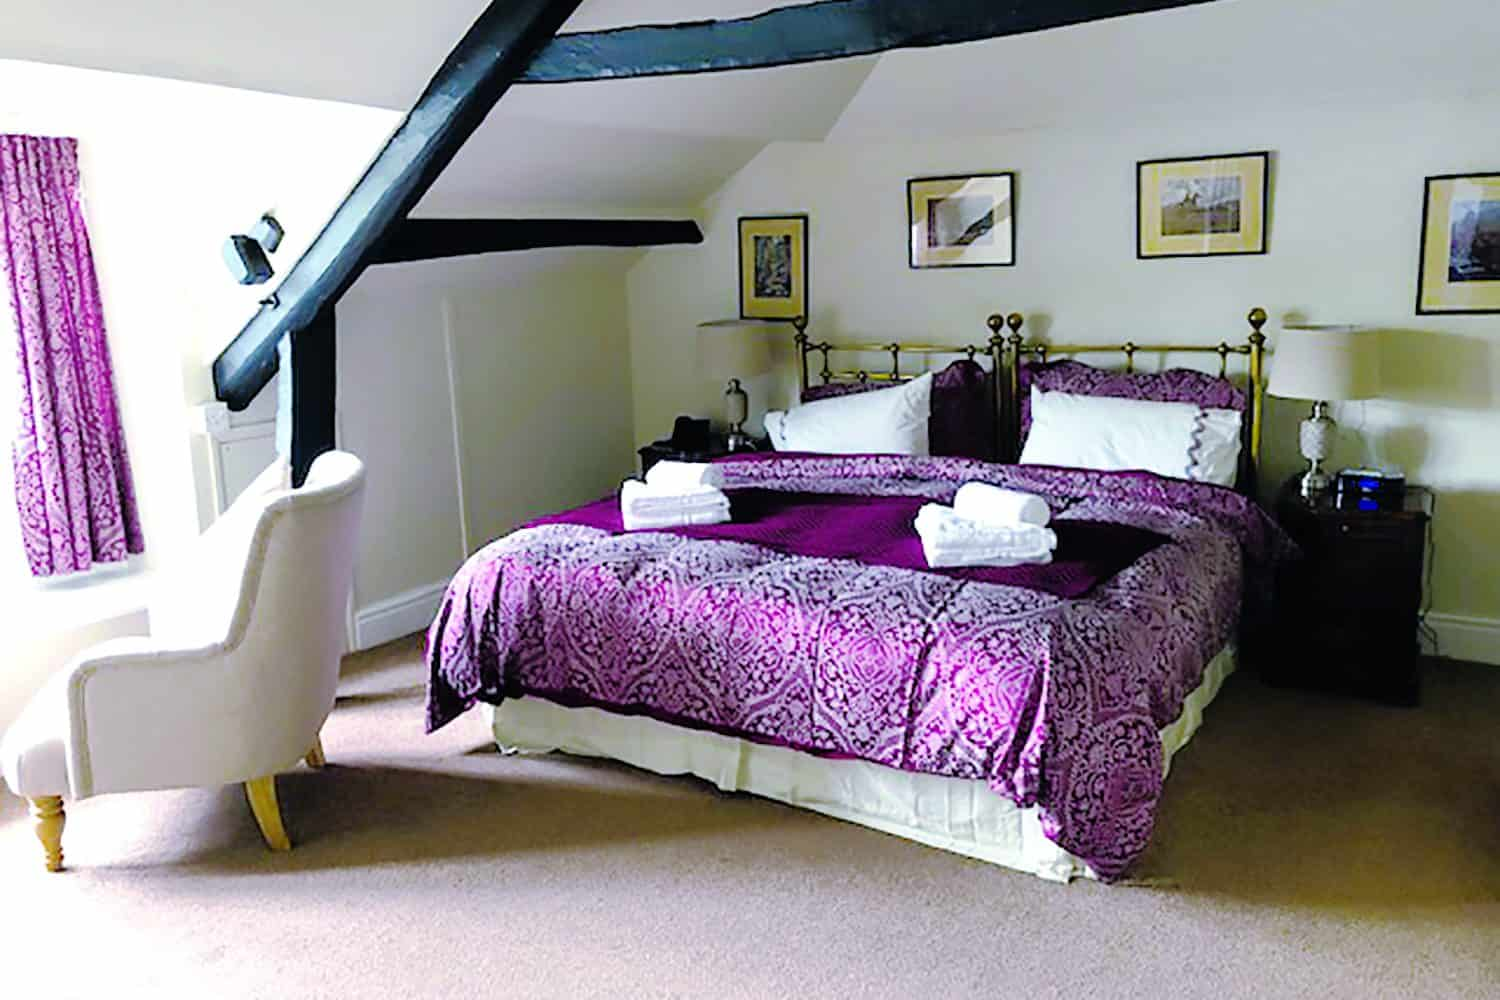 Bedrooms at The Royal Oak, Withypool